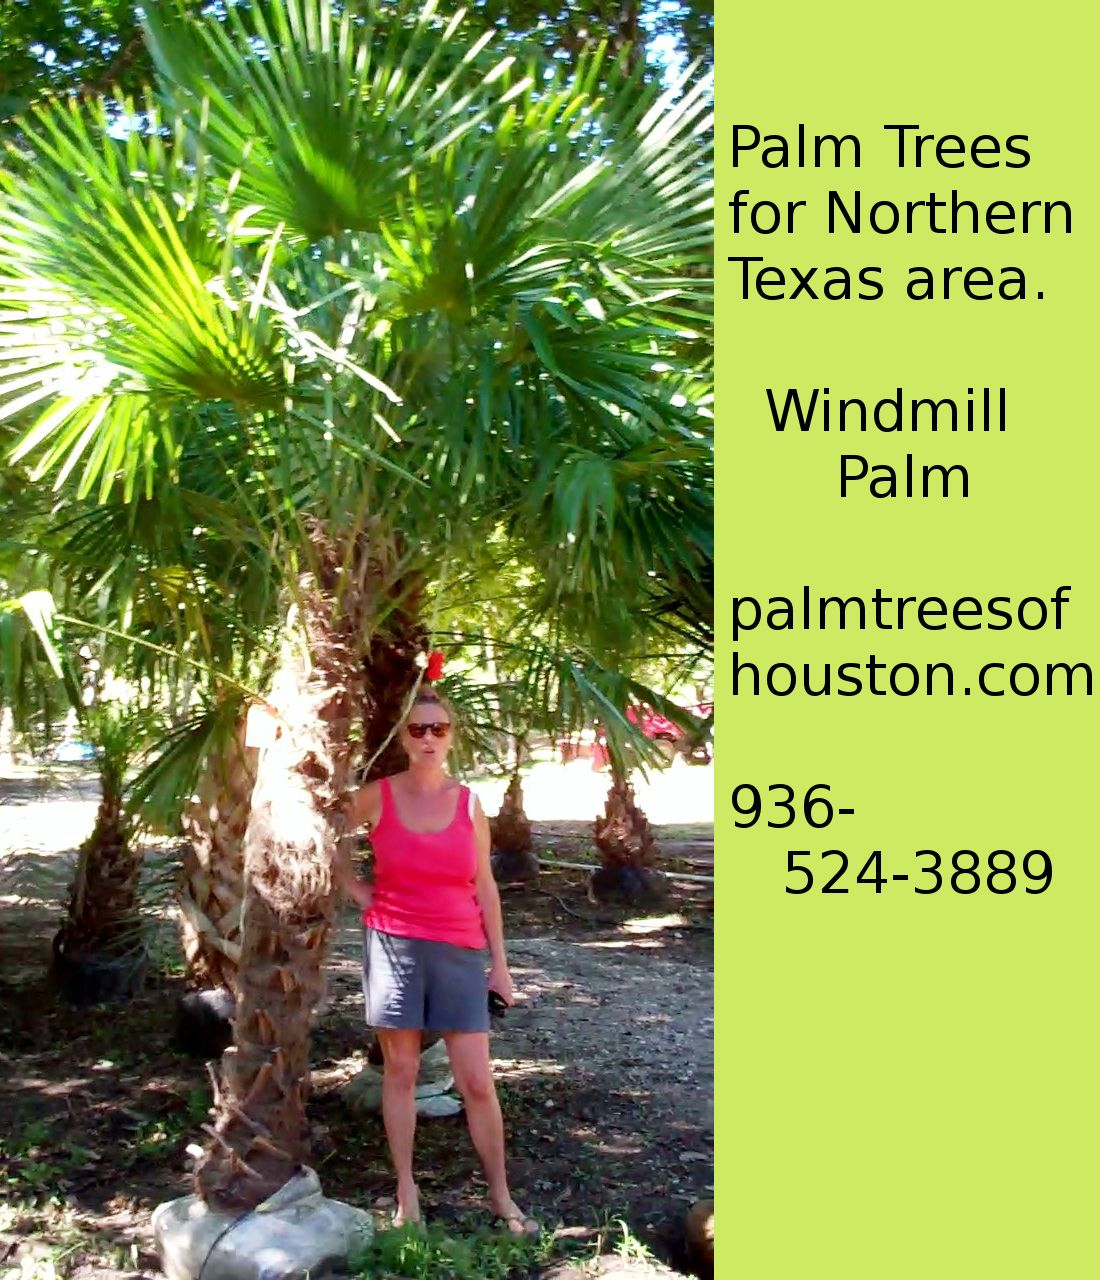 Windmill Palms Have Been Rated Down To Five Degrees Will Usually Do Well In Abilene And Midland Texas Palm Trees